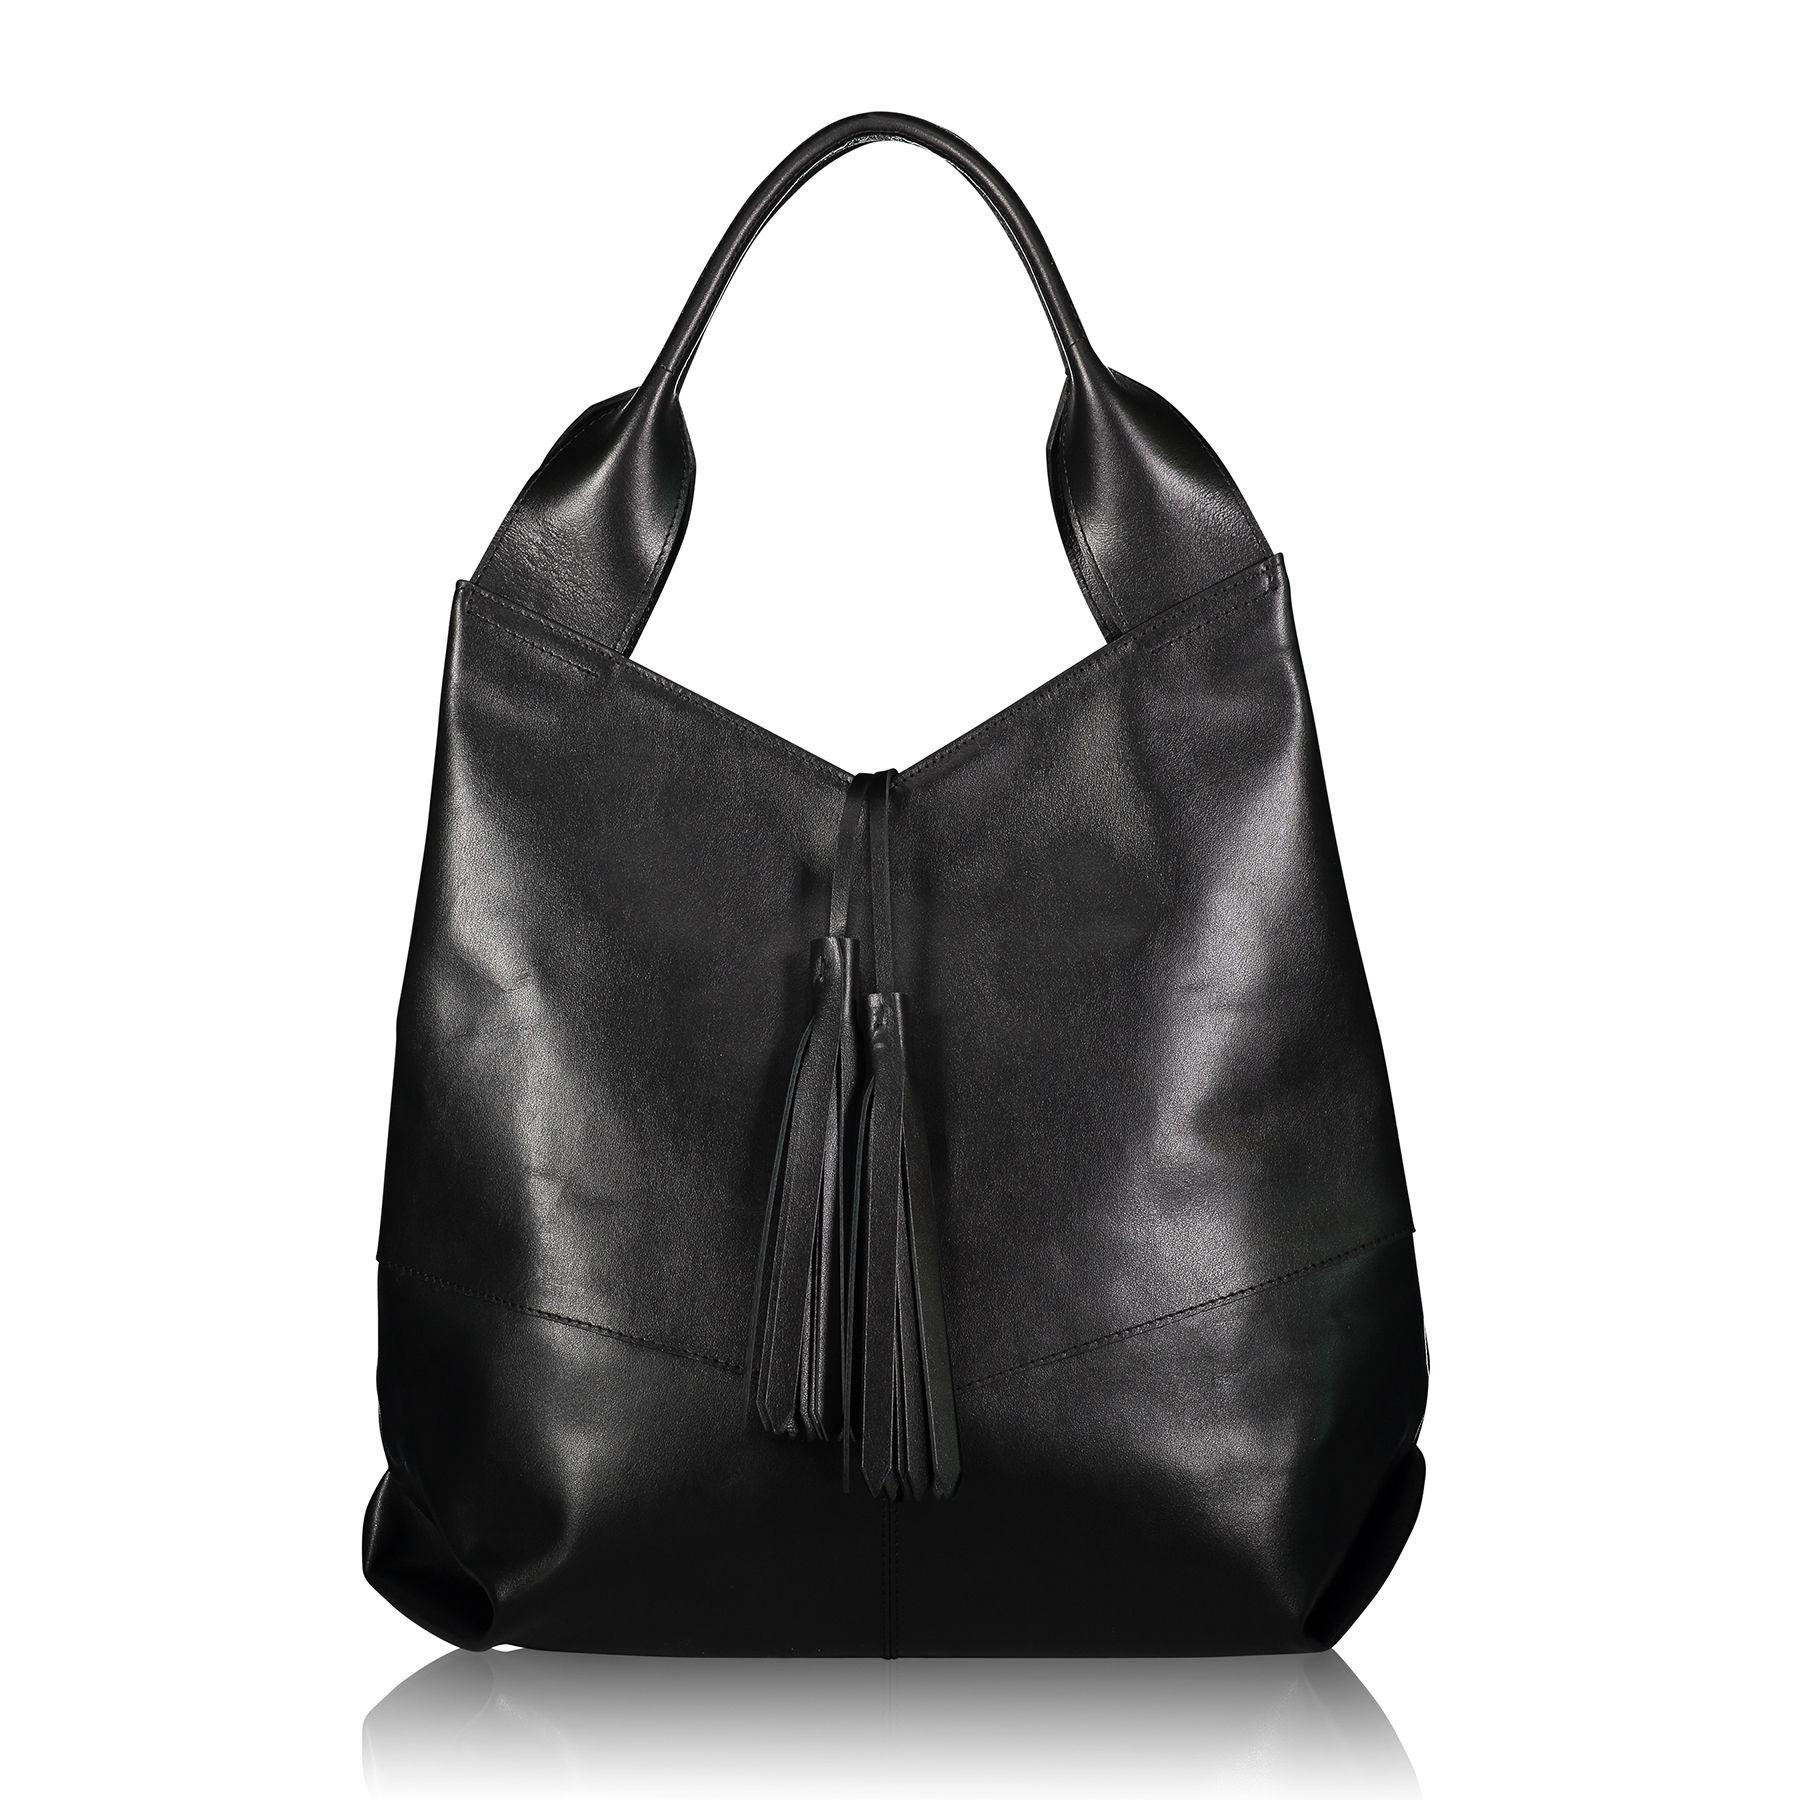 Lyst - Joanna Maxham Aficionado Tote In Nappa Leather (black) in Black 55614b0fa19e1